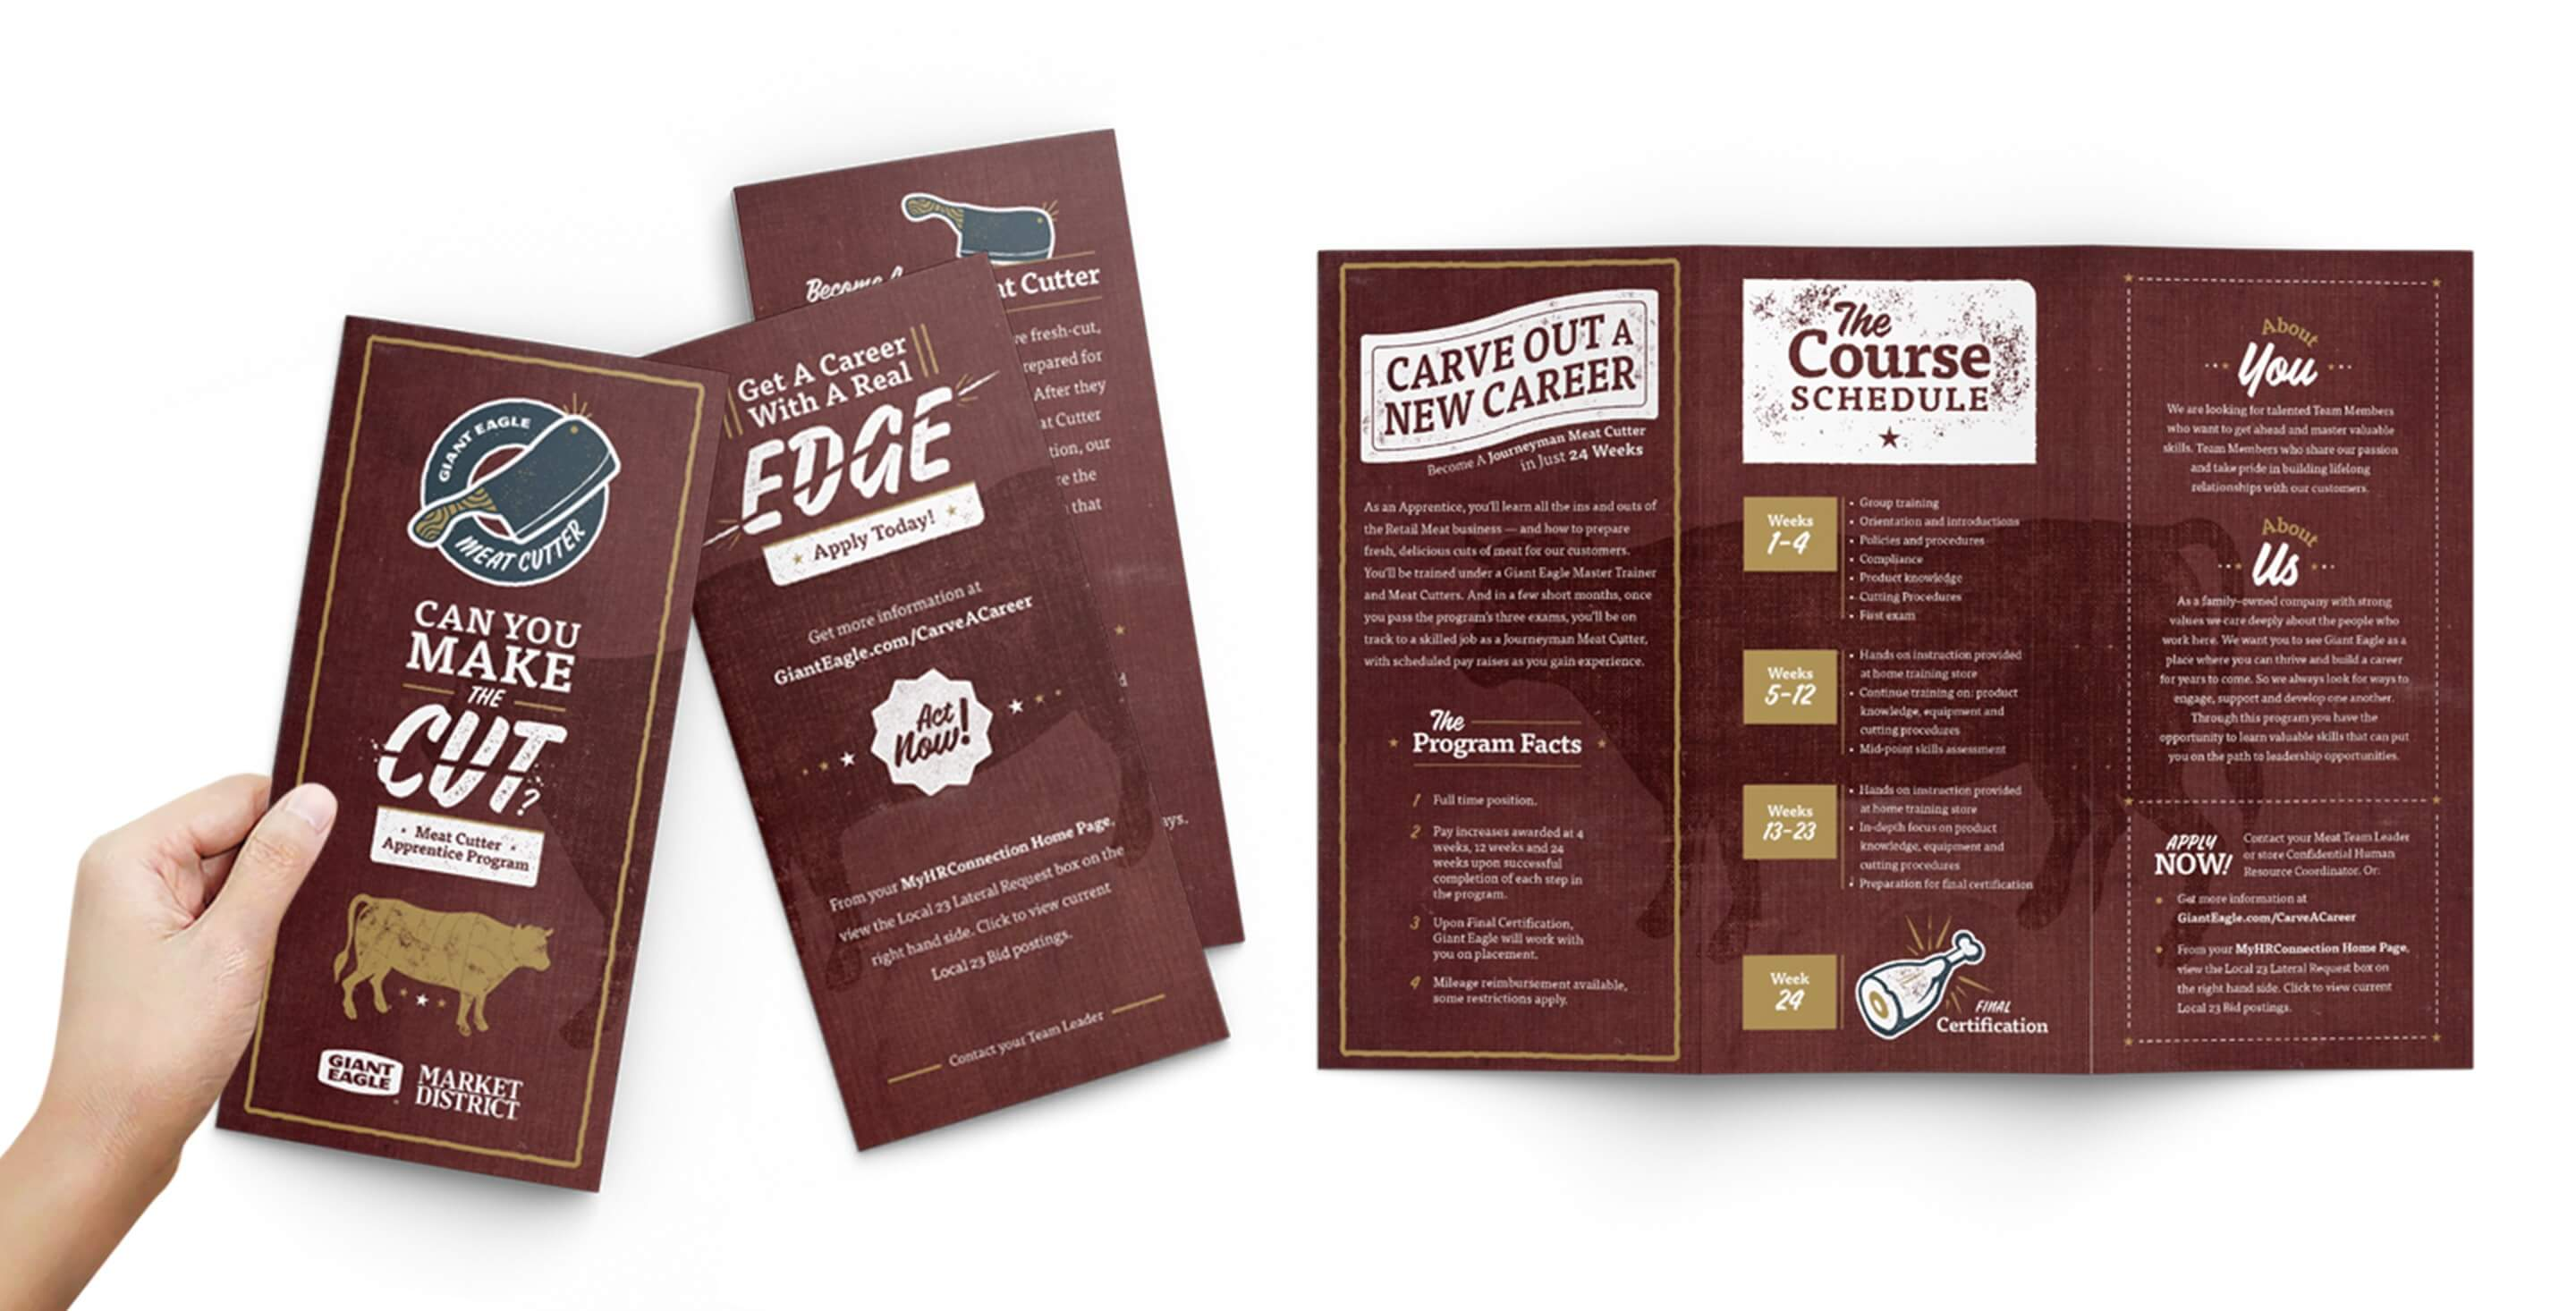 Giant-Eagle-Image-Meat-Cutter-Brochure-2.2